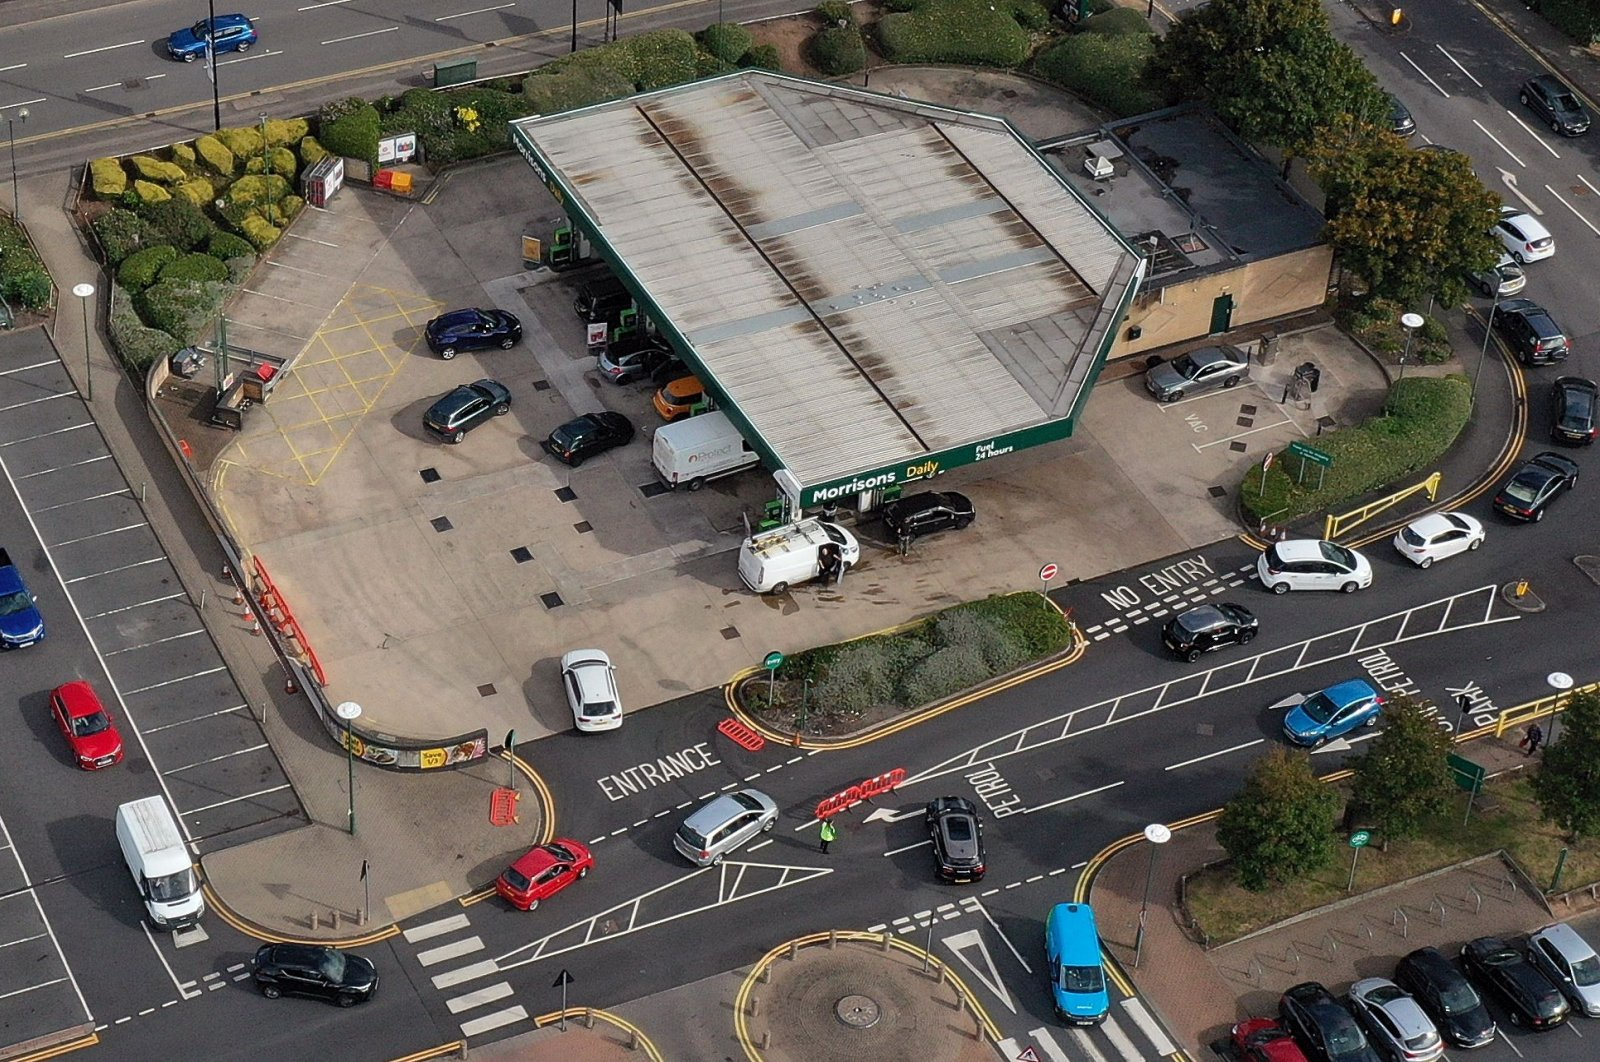 An aerial view shows motorists queueing at a petrol station in Coventry, central England on Sept. 28, 2021. (AFP Photo)